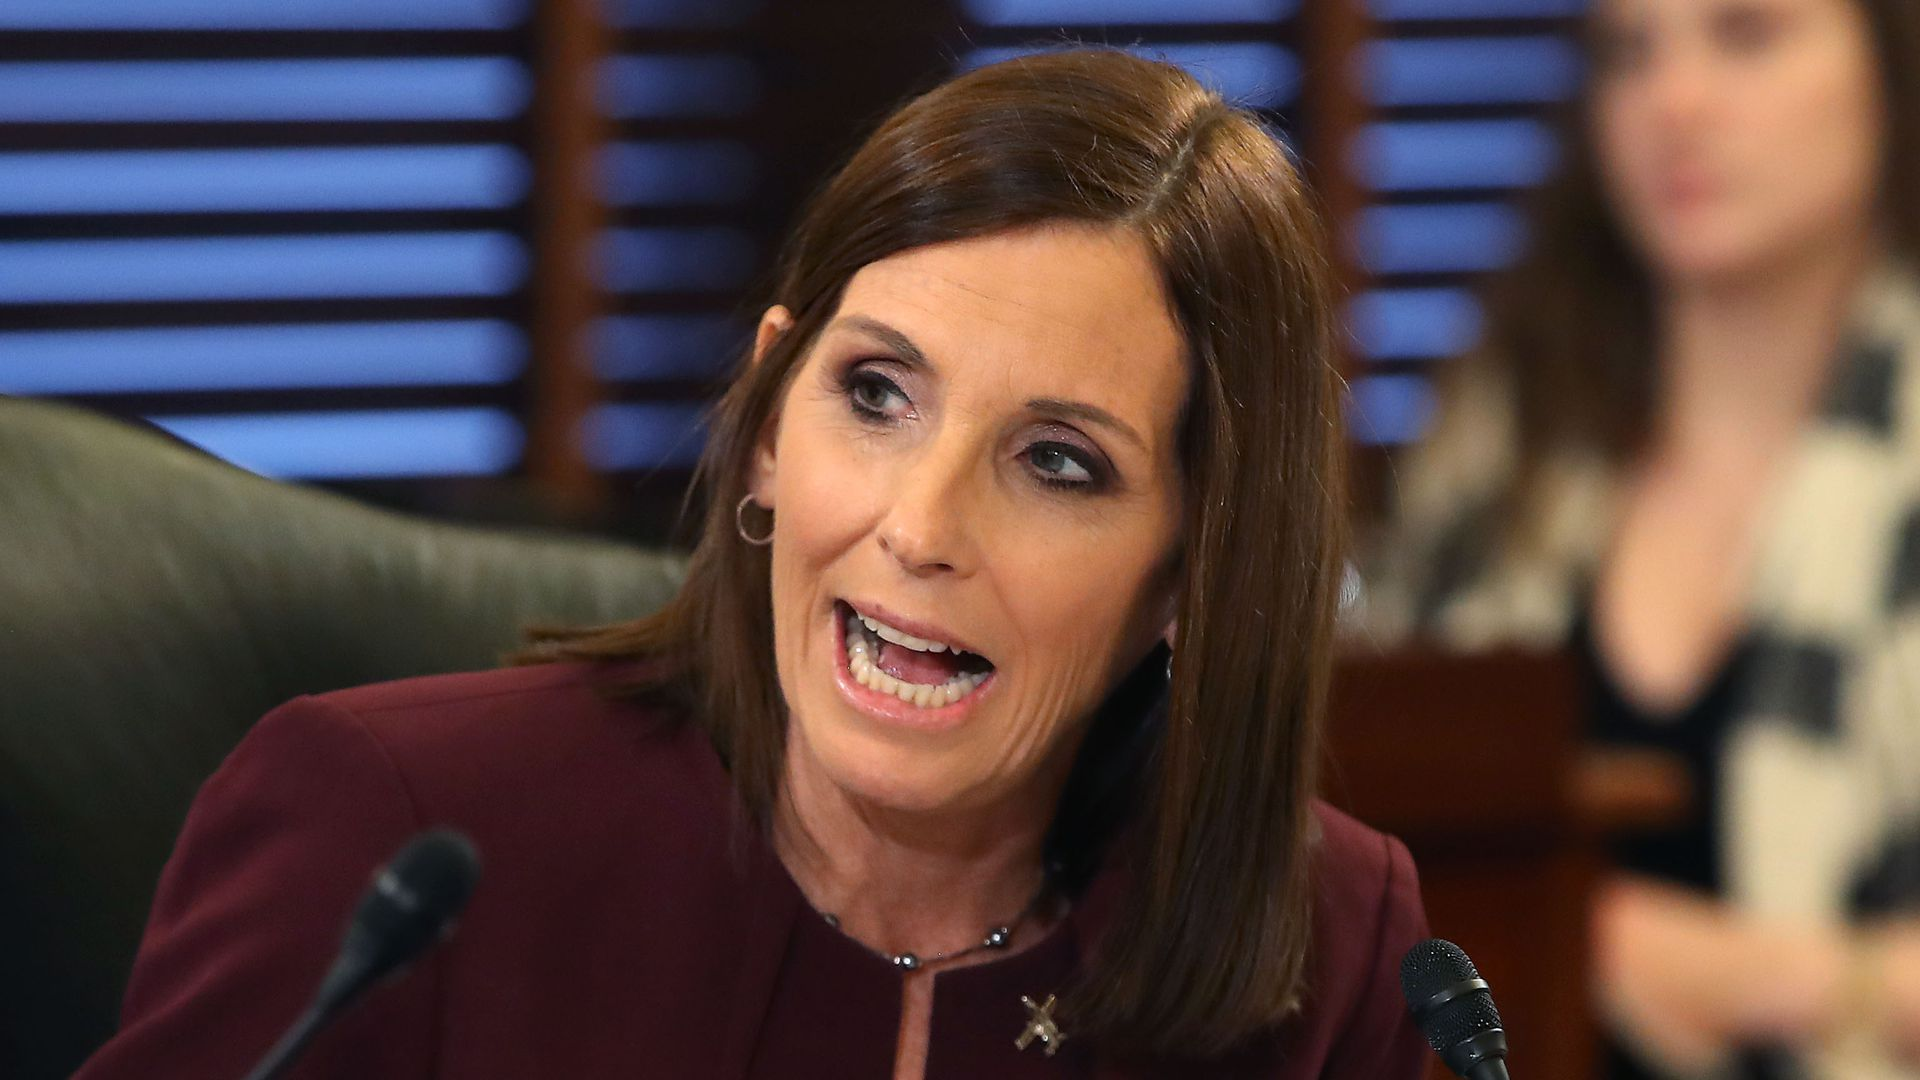 Martha McSally Phone Number, Email, Fan Mail, Address, Biography, Agent, Manager, Mailing address, Contact Info, Mailing Addresses